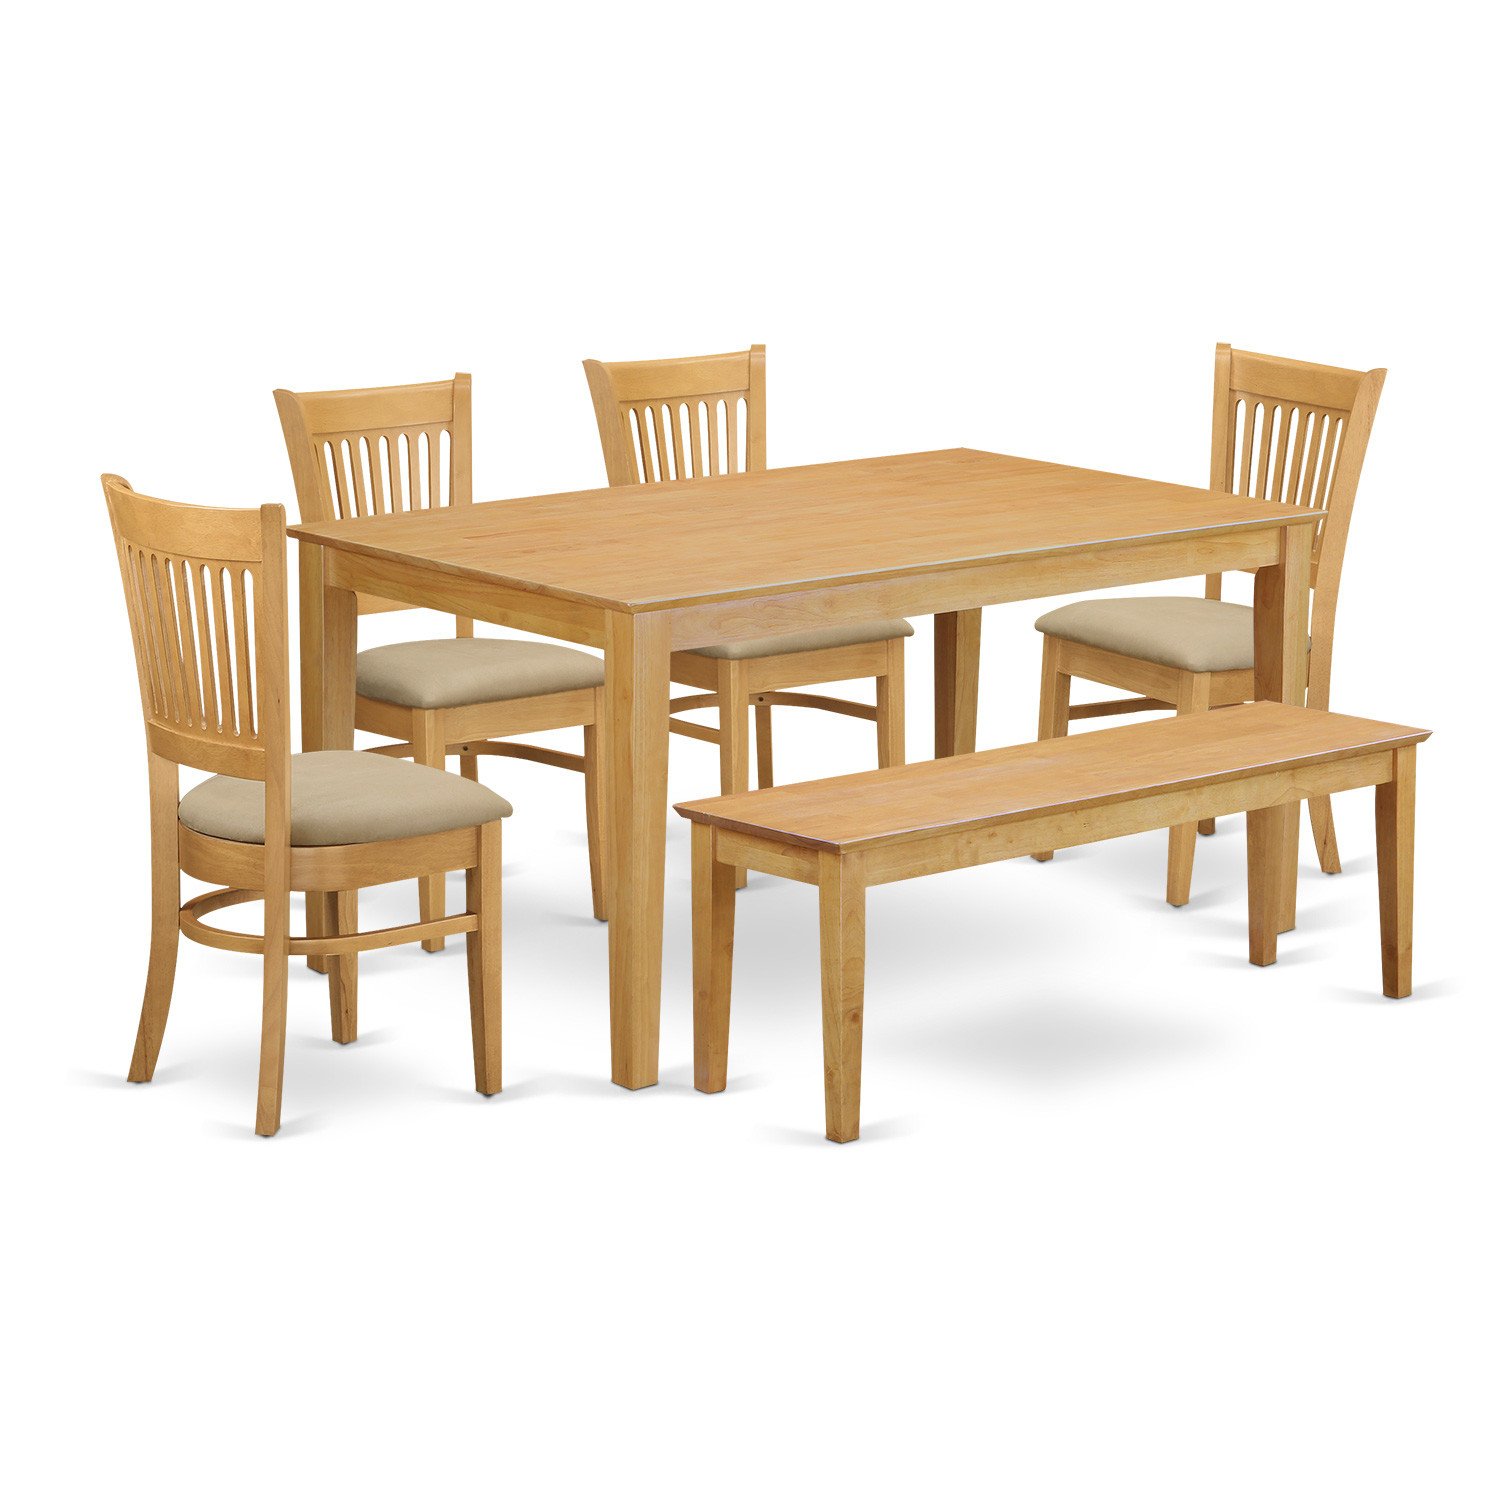 Smyrna 3 Piece Dining Sets Throughout Trendy Charlton Home Smyrna 6 Piece Dining Set (View 2 of 20)